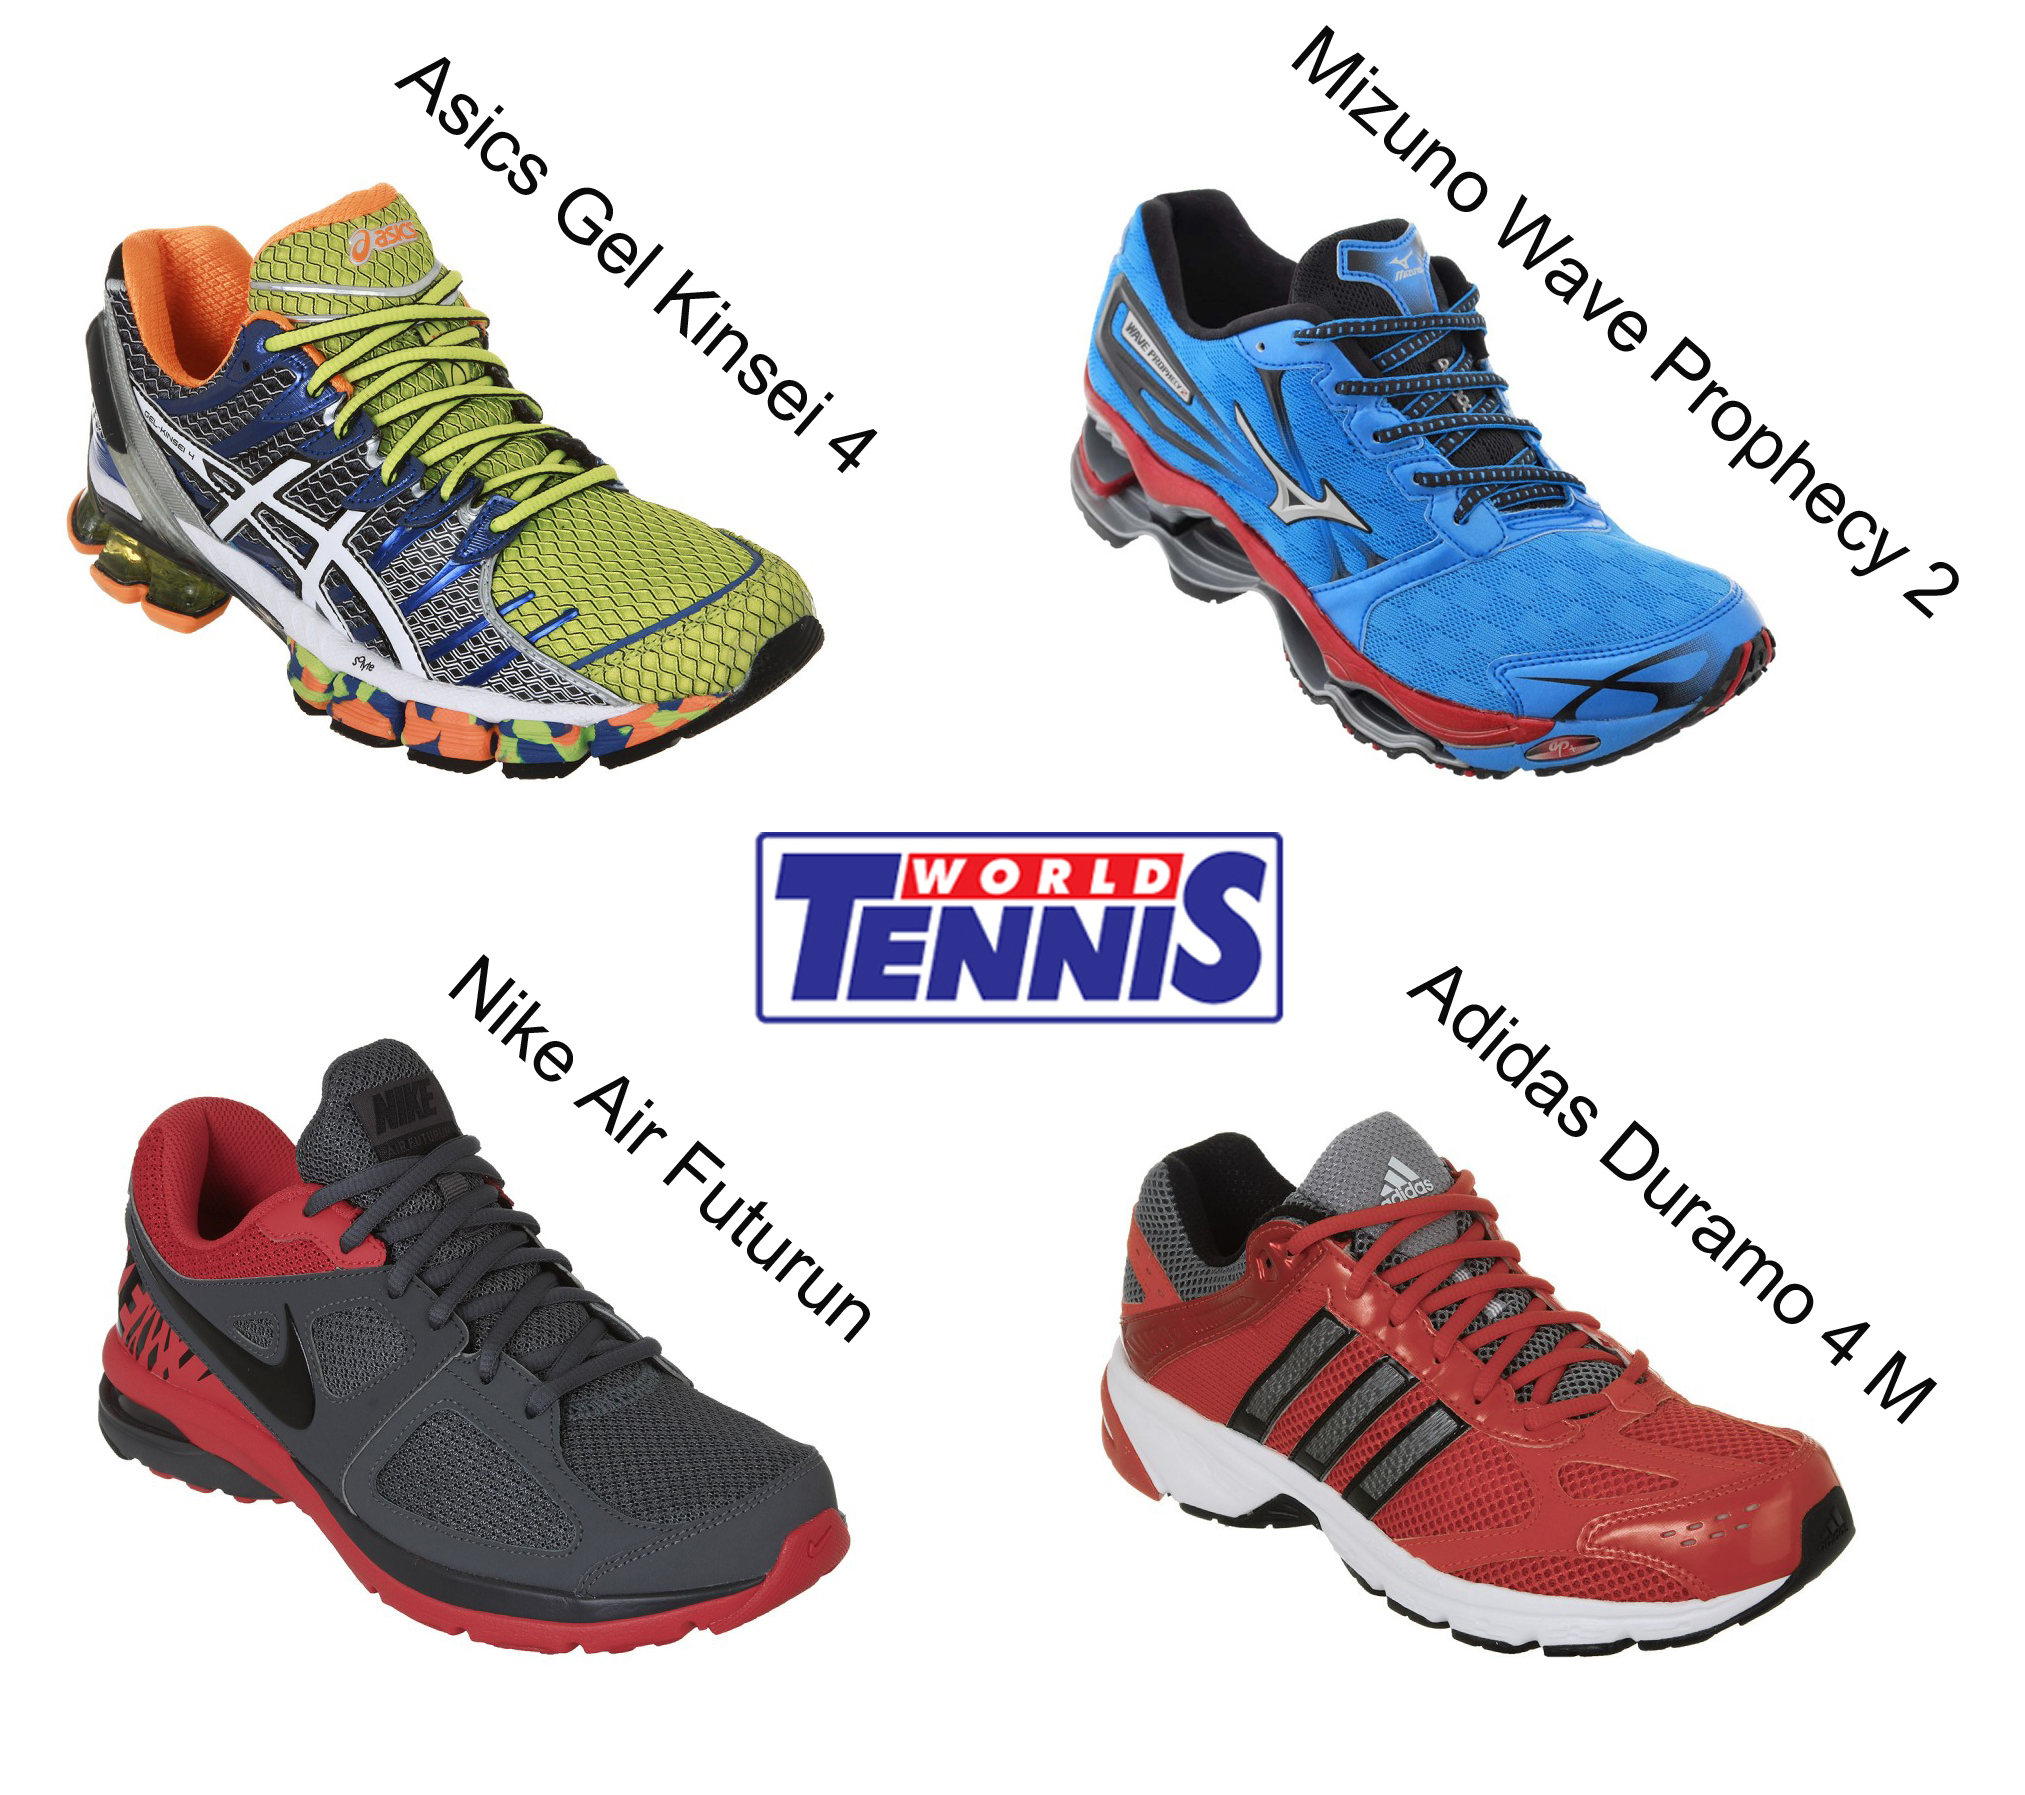 tenis asics masculino world tennis